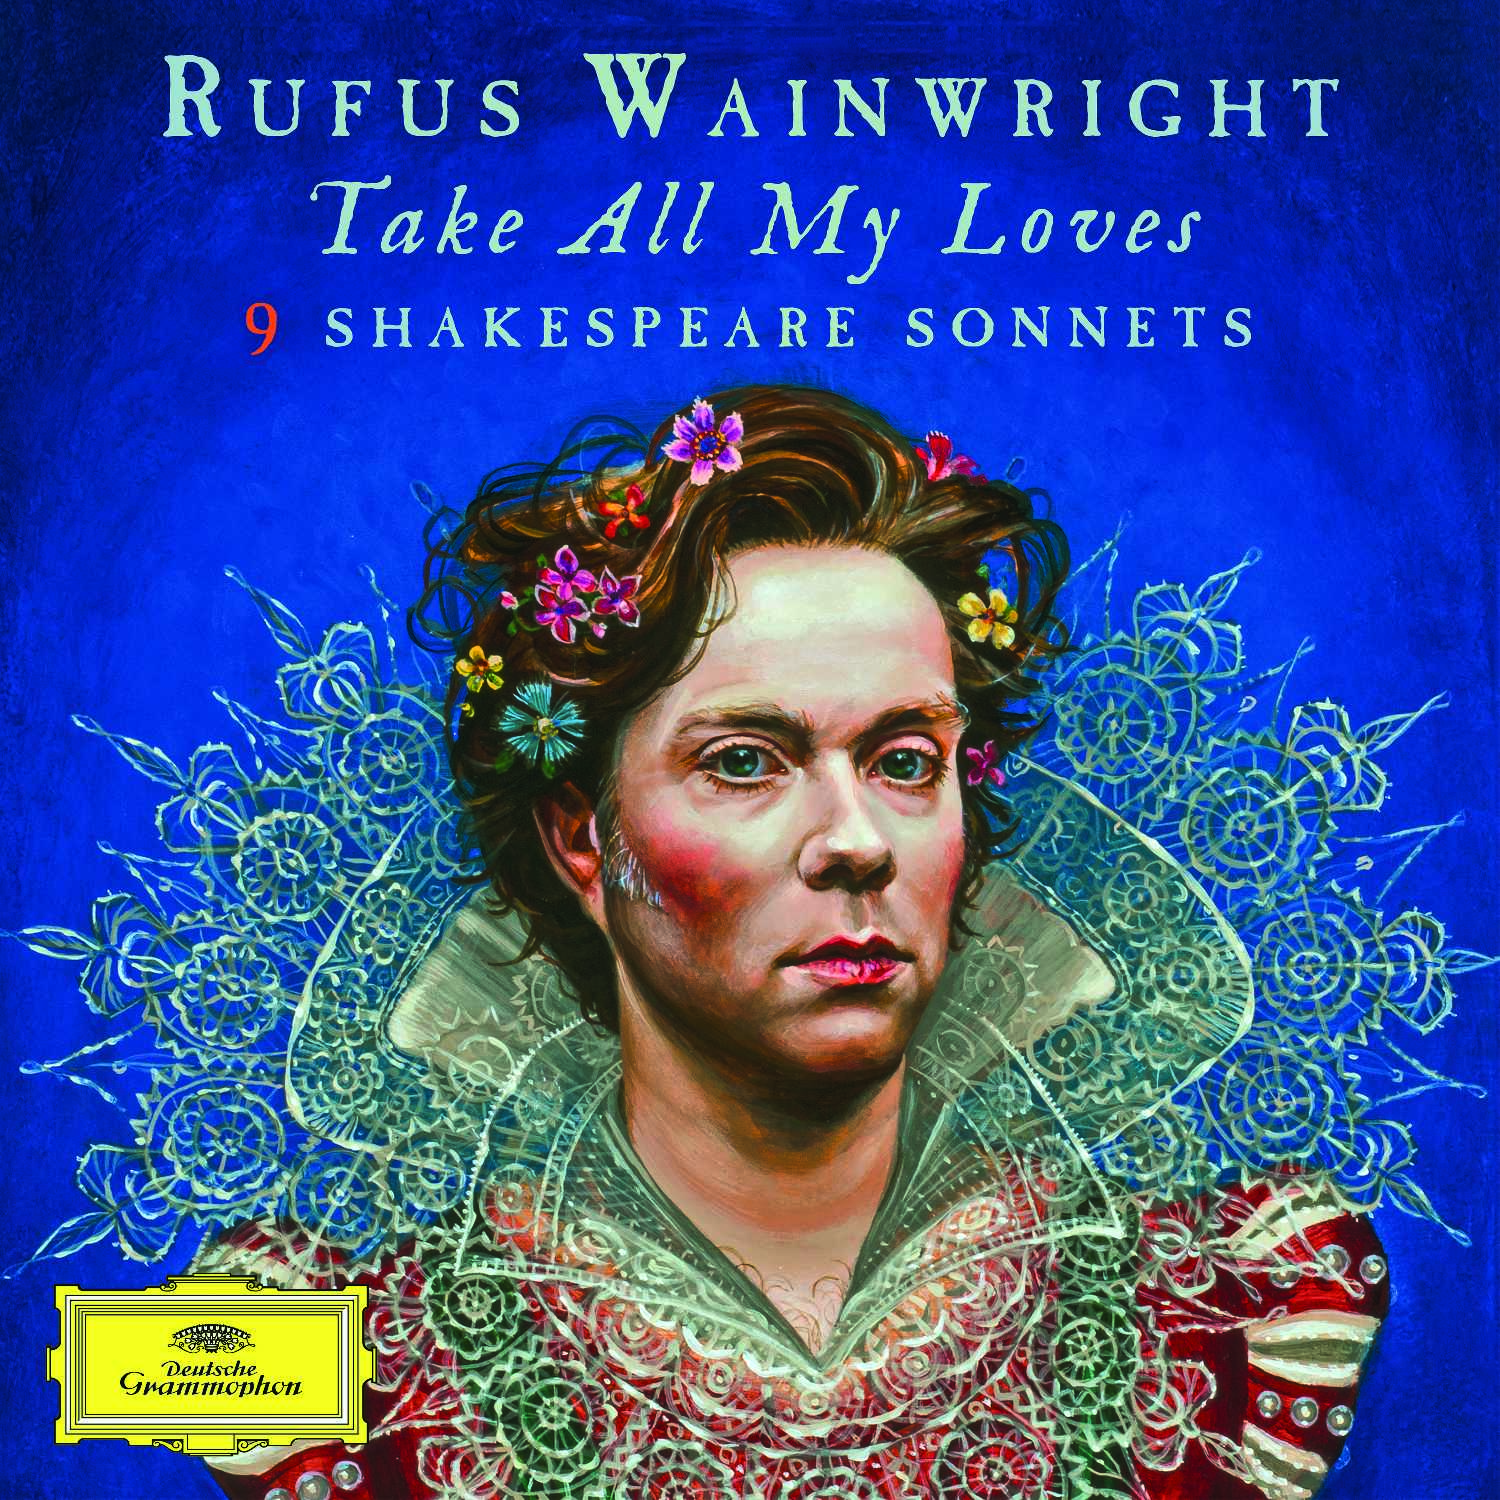 florence-welch-when-in-disgrace-with-fortune-and-mens-eyes-rufus-wainwright-take-all-my-loves-shakespeare